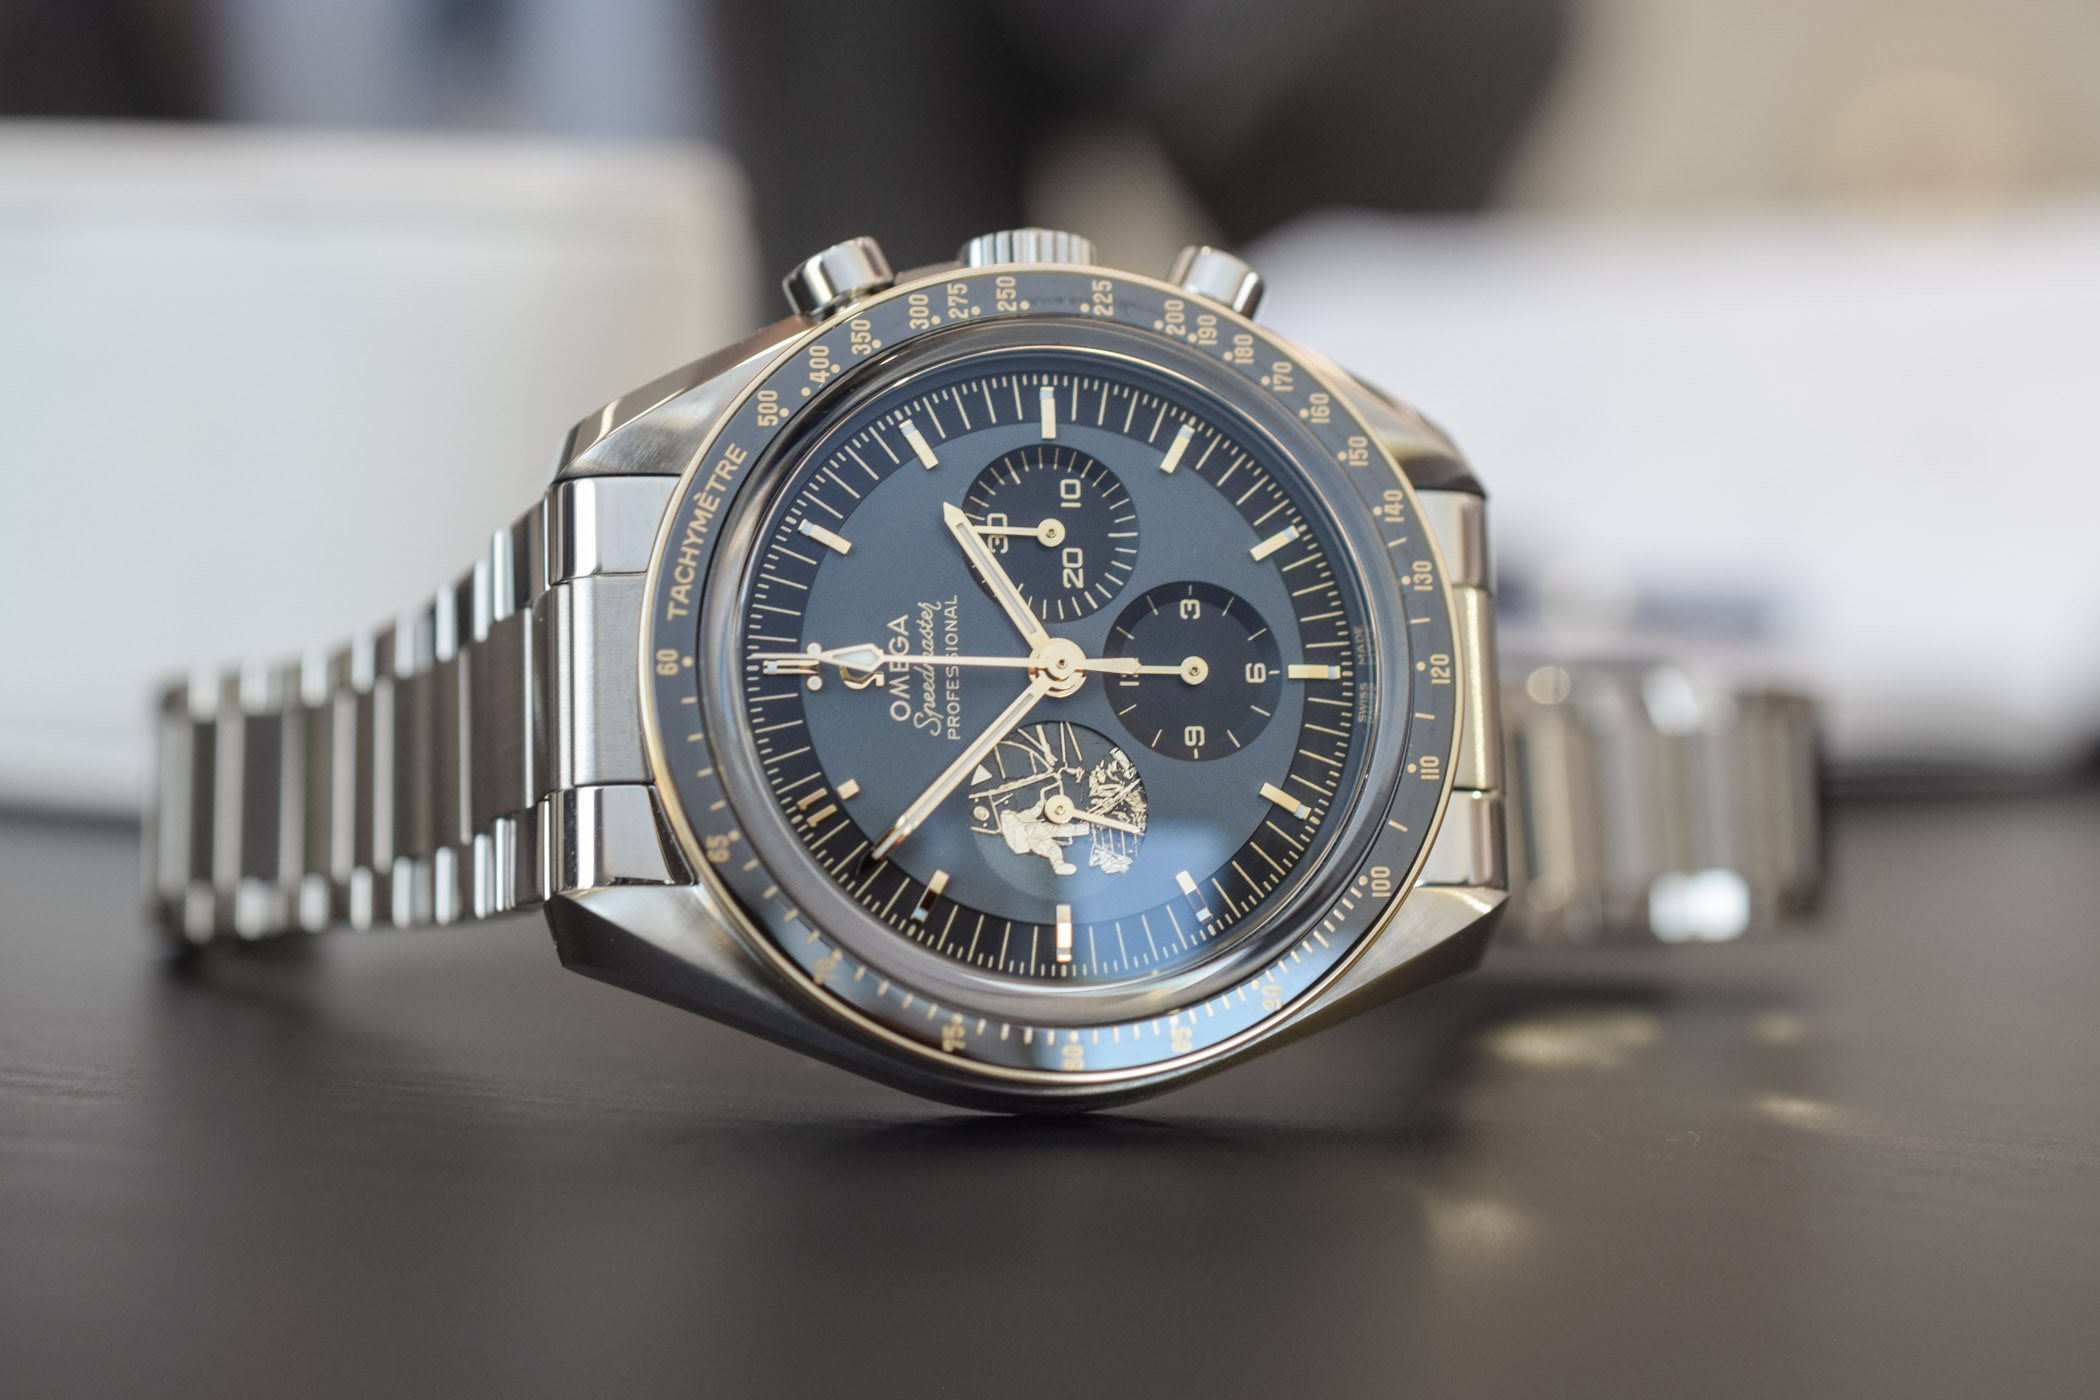 OMEGA Speedmaster Apollo 11 50th Anniversary Limited Edition Steel 310.20.42.50.01.001